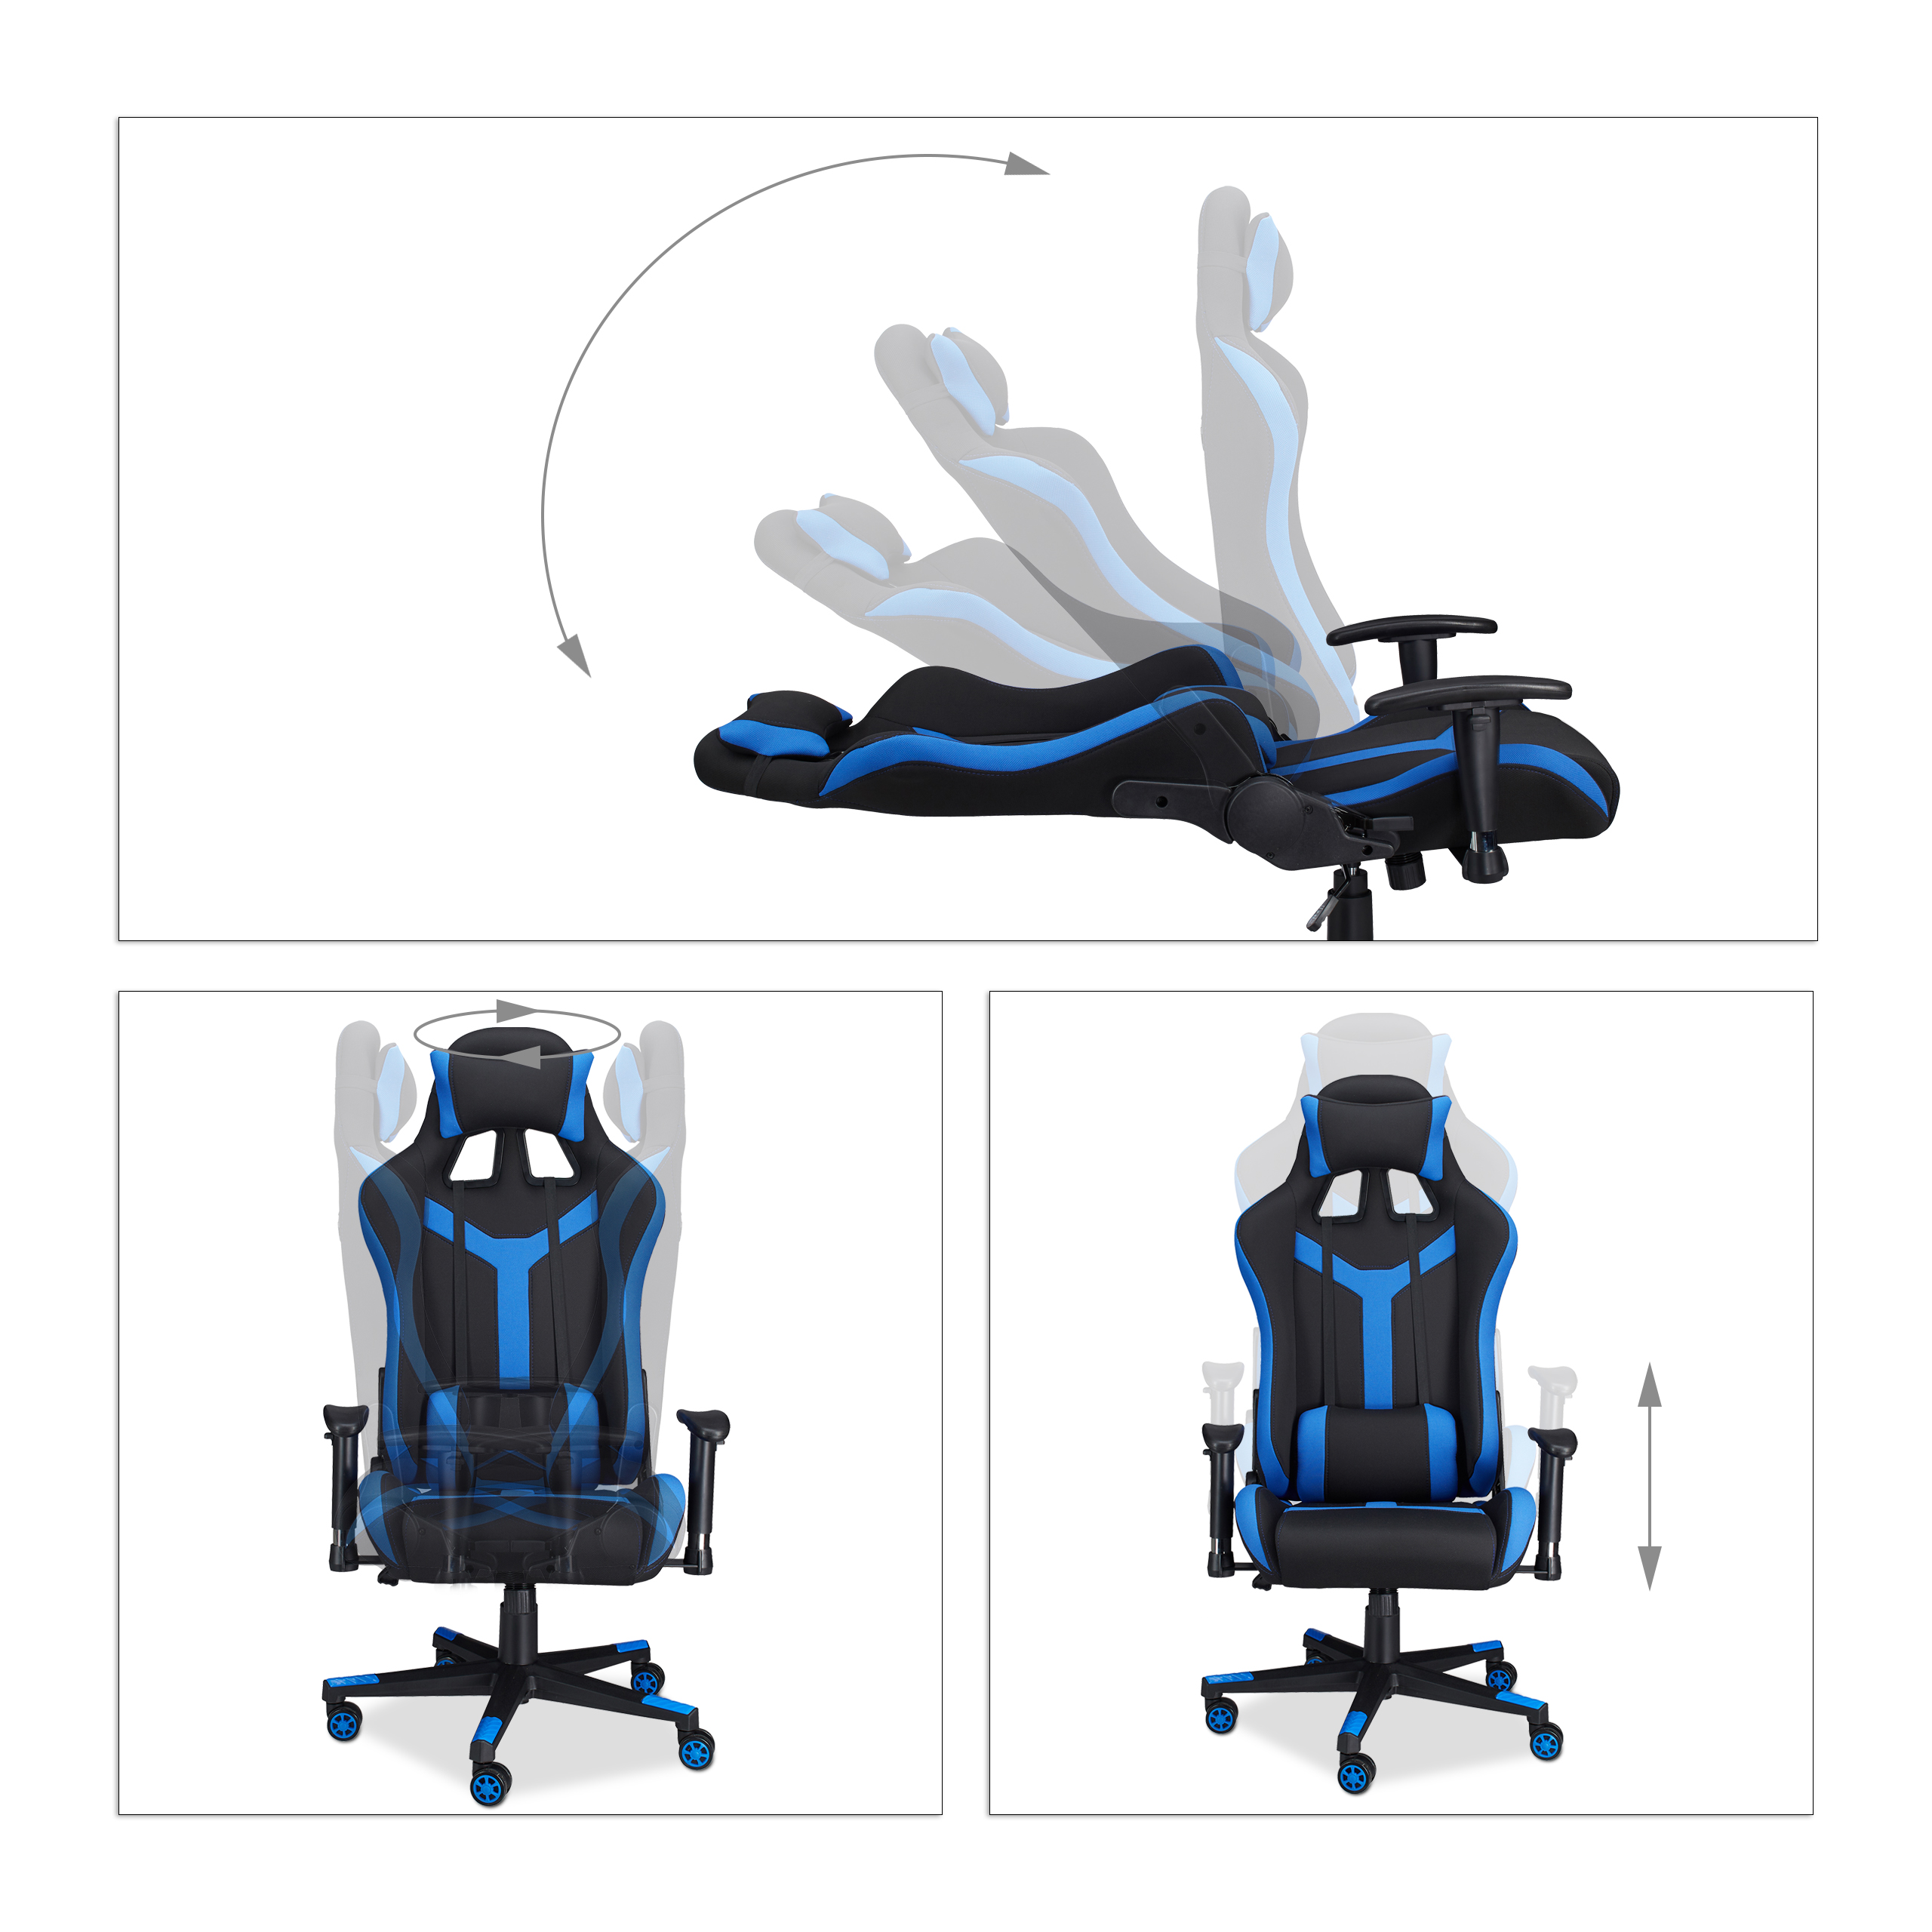 Stuhl Gamer Gaming Stuhl Xr10 Bürostuhl Bis 120kg Gamer Chair